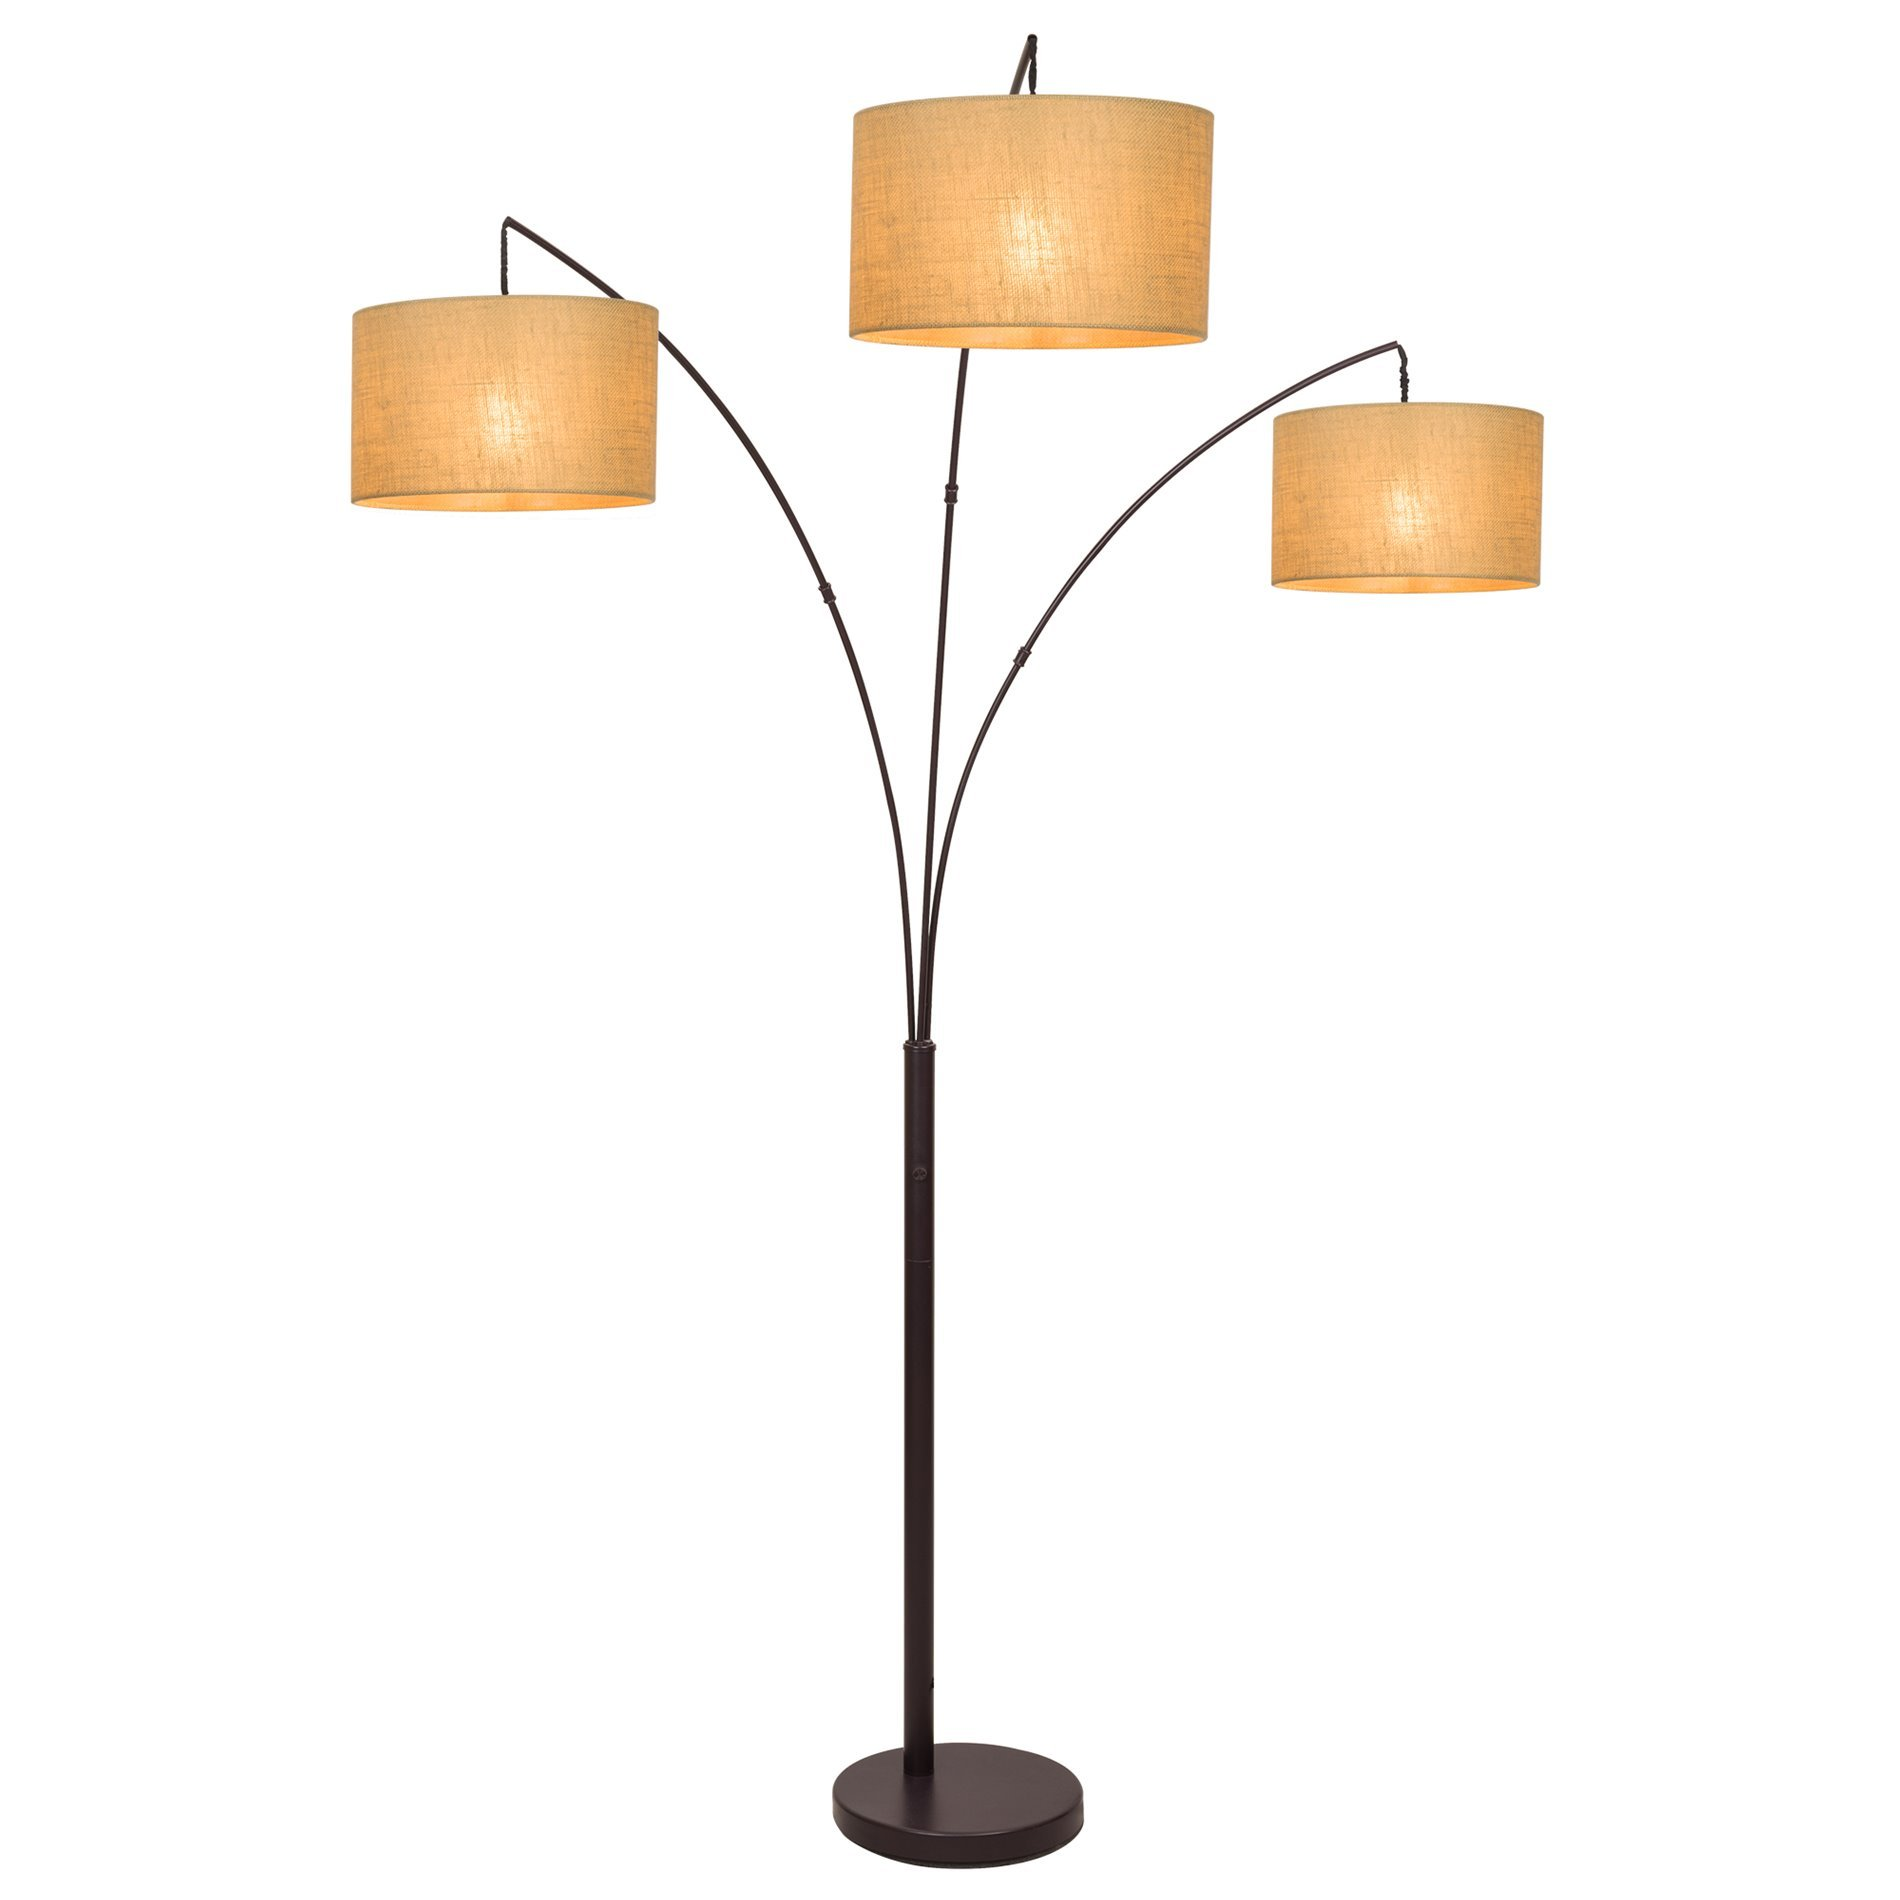 Revel Akira 80'' 3-Light Arc Floor Lamp, Antique Bronze Finish & Beige Burlap Drum Shades